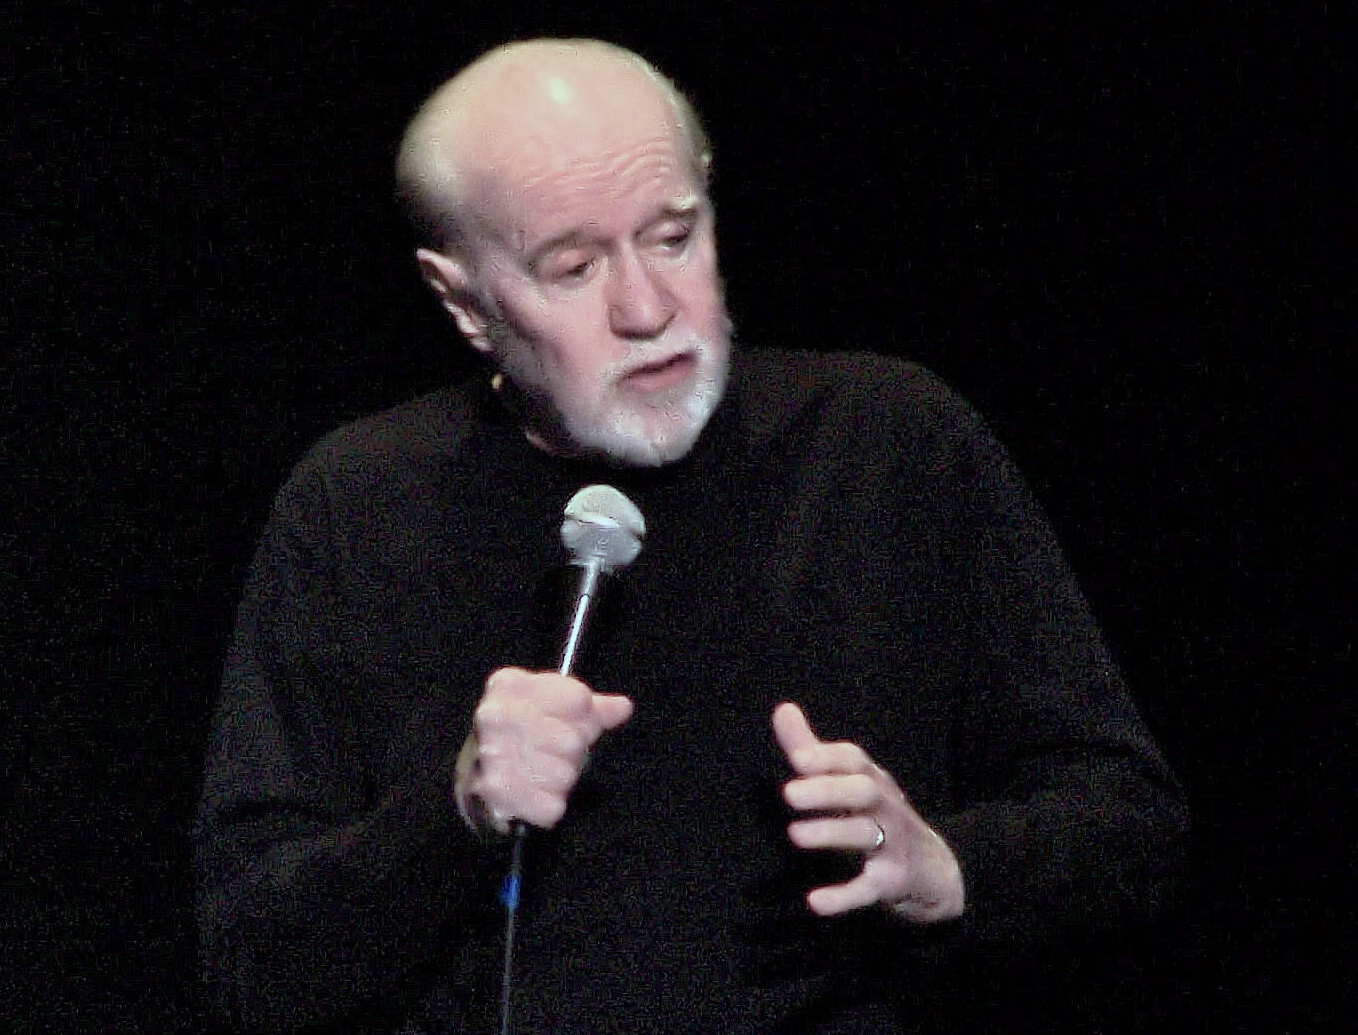 George Carlin facts